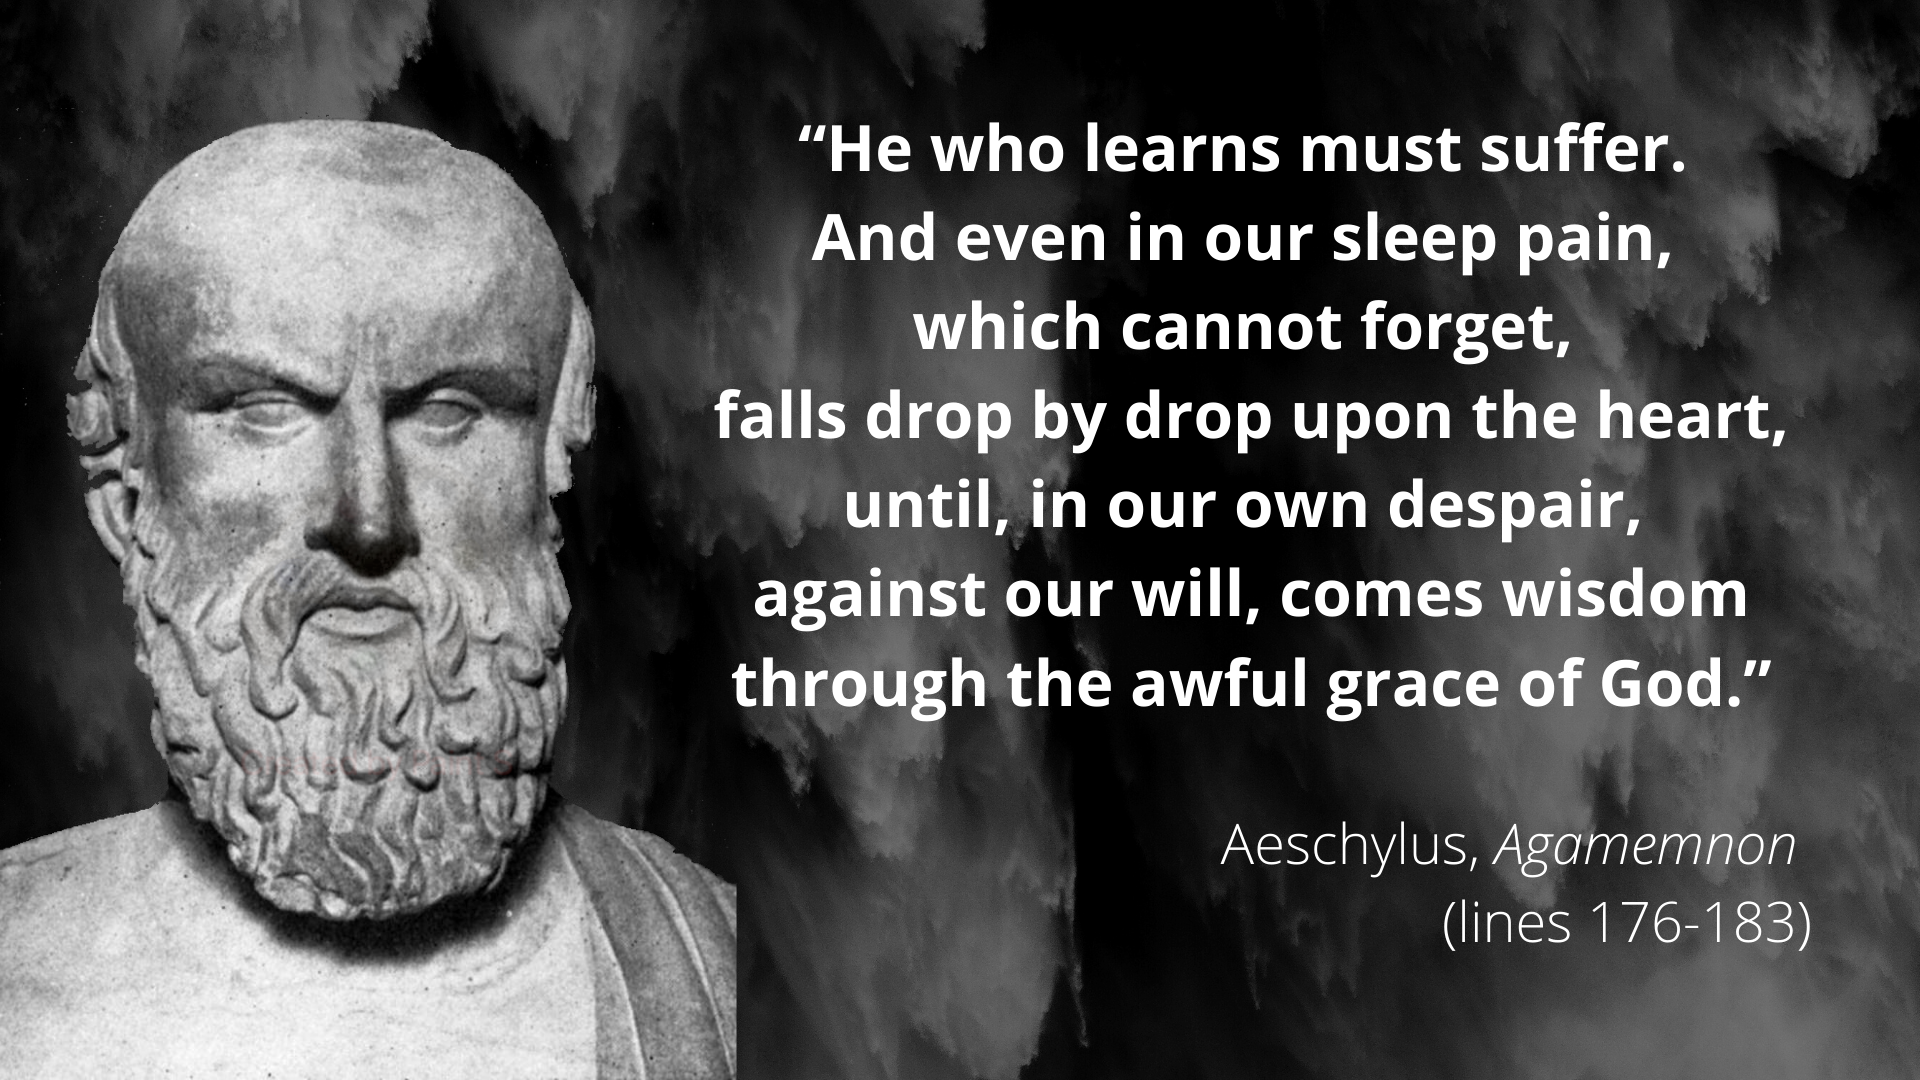 """He who learns must suffer. And even in our sleep pain, which cannot forget, falls drop by drop upon the heart, until, in our own despair, against our will, comes wisdom through the awful grace of God."" Aeschylus, Agamemnon (lines 176—183) https://inspirational.ly"